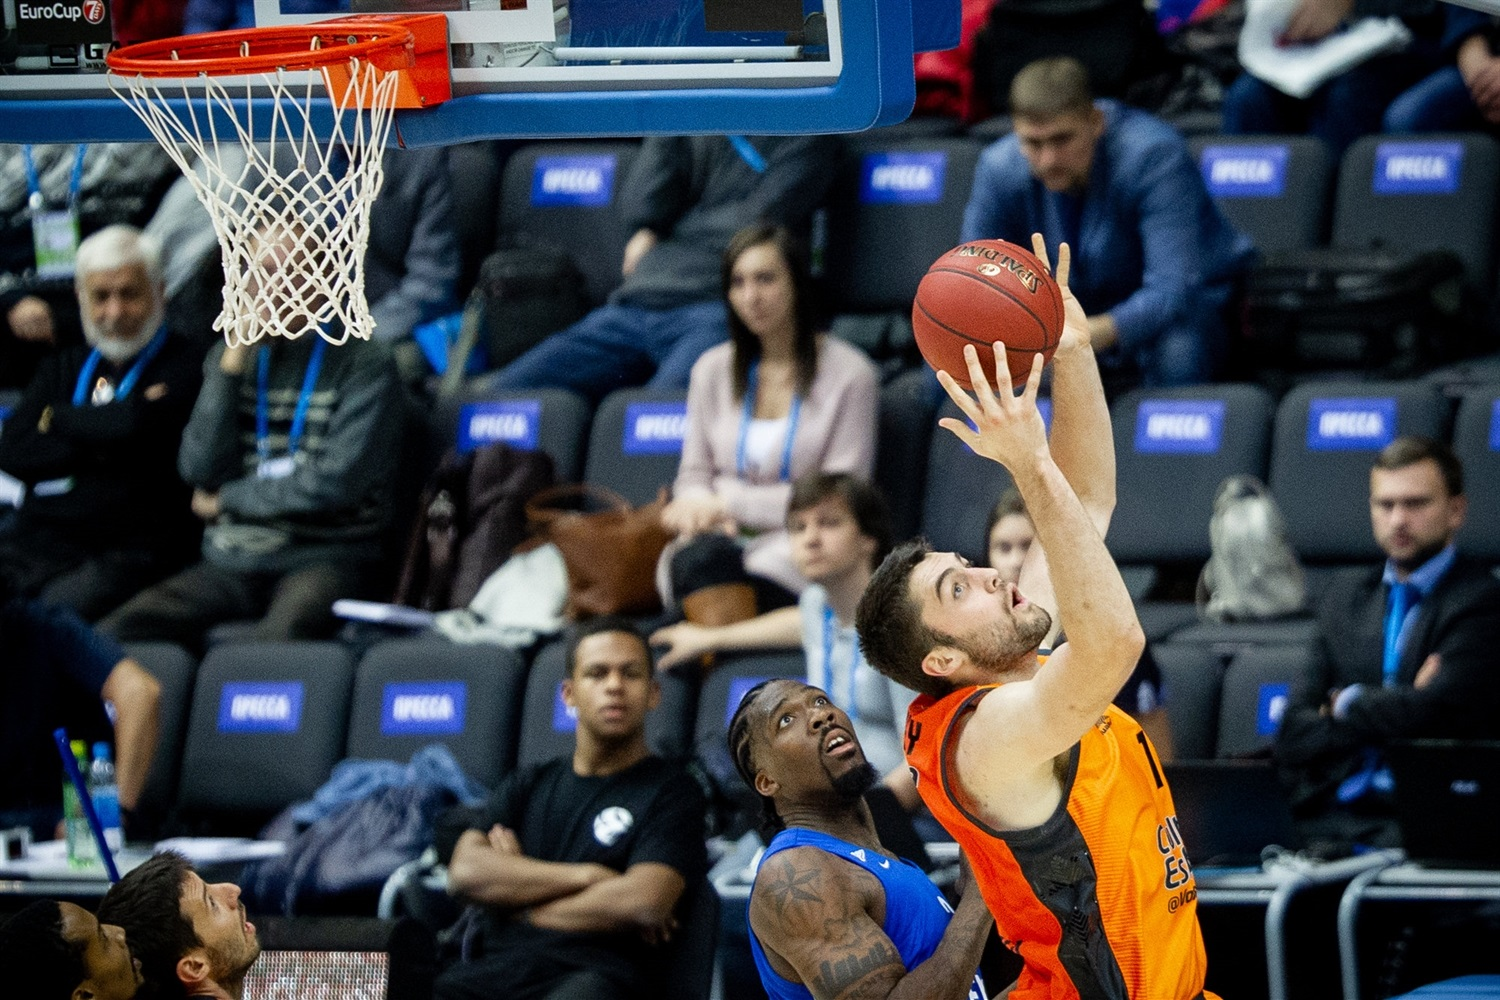 Sergi Garcia - Valencia Basket (photo Zenit) - EC18